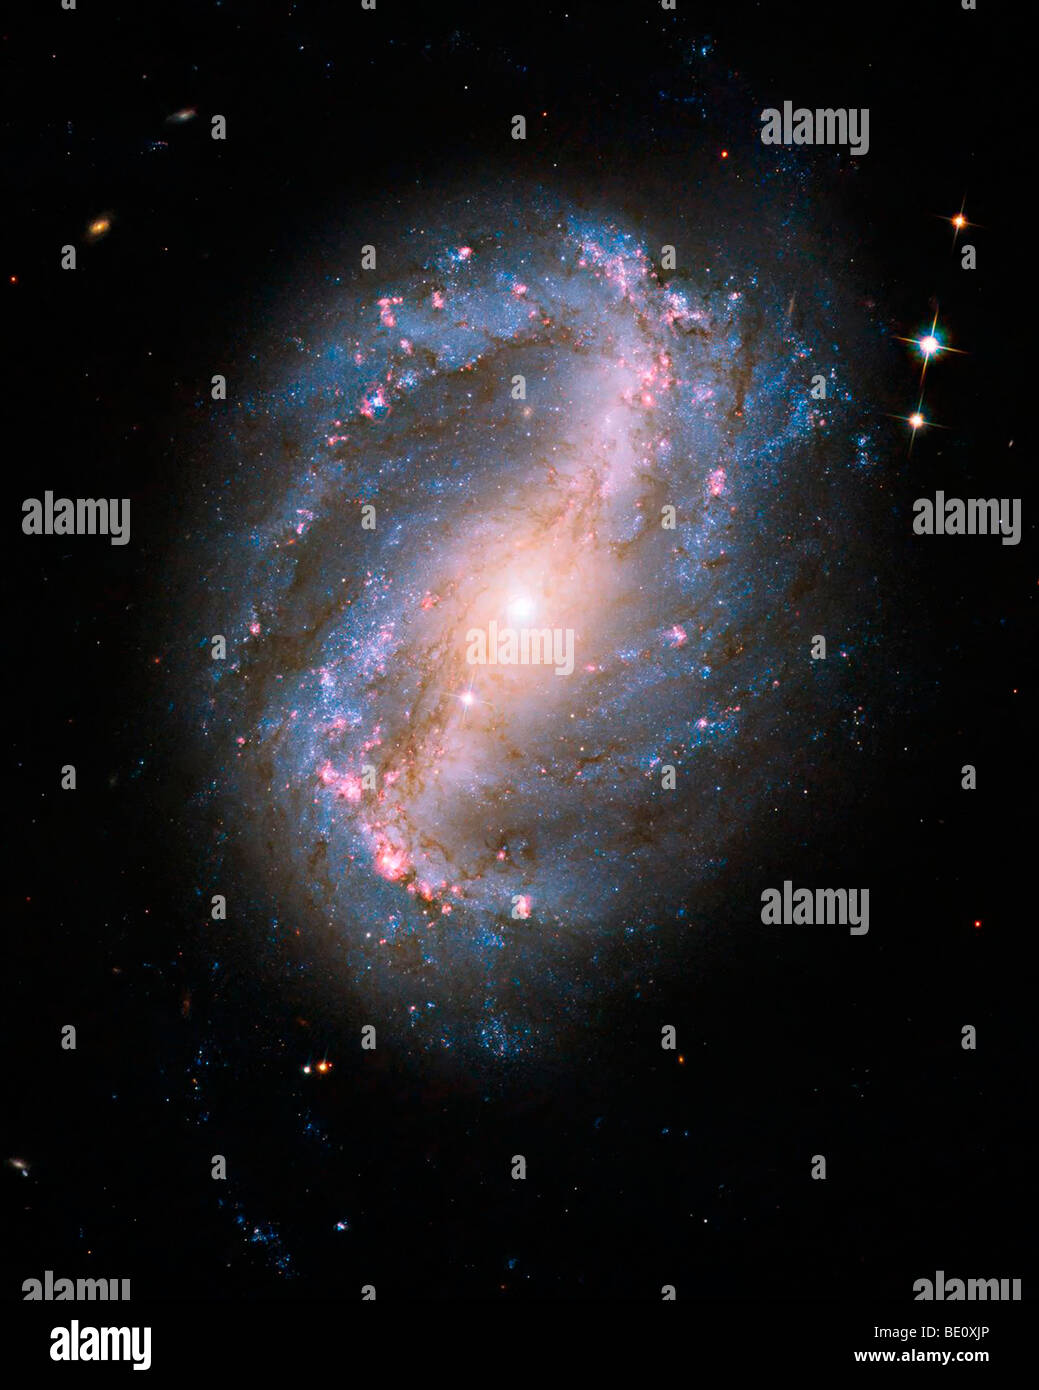 Barred Spiral Galaxy. Image from the refurbished Hubble Telescope - Stock Image